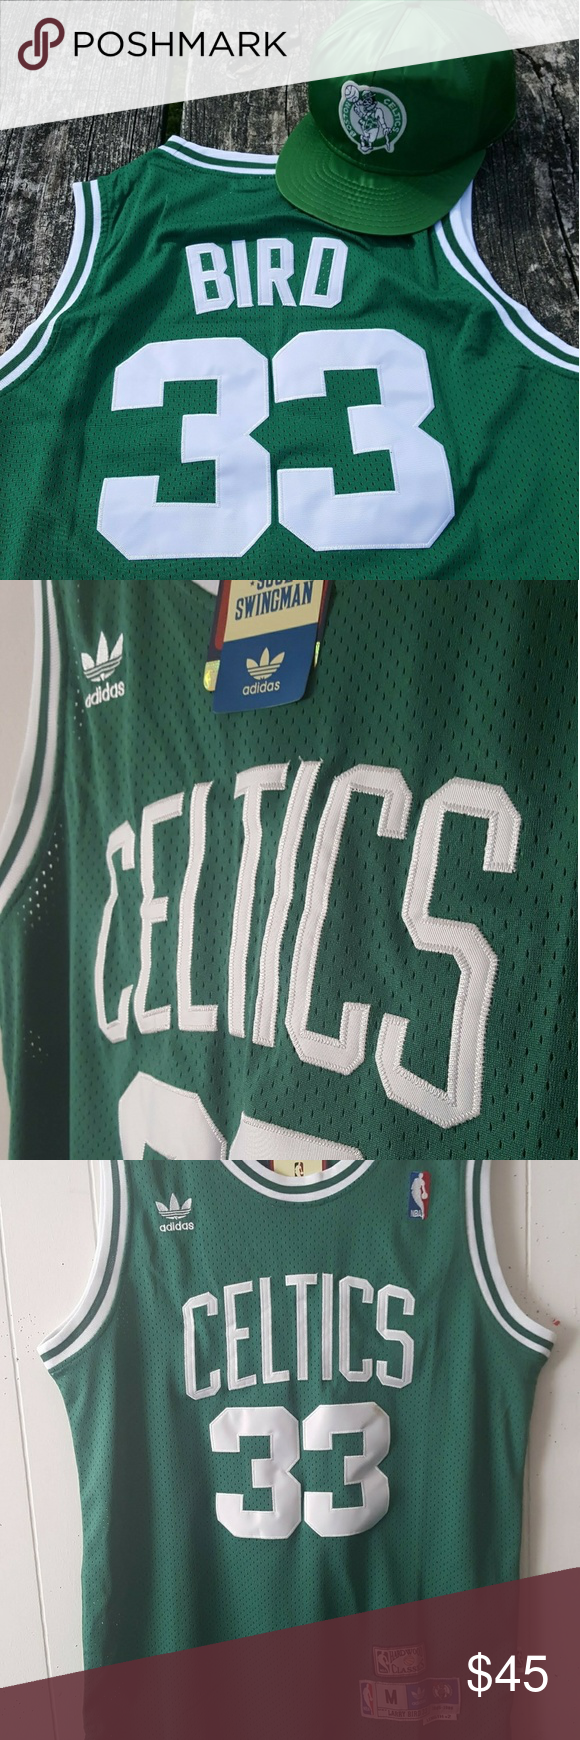 quality design 58279 41575 Boston Celtics Larry Bird adidas Jersey New with tags ...